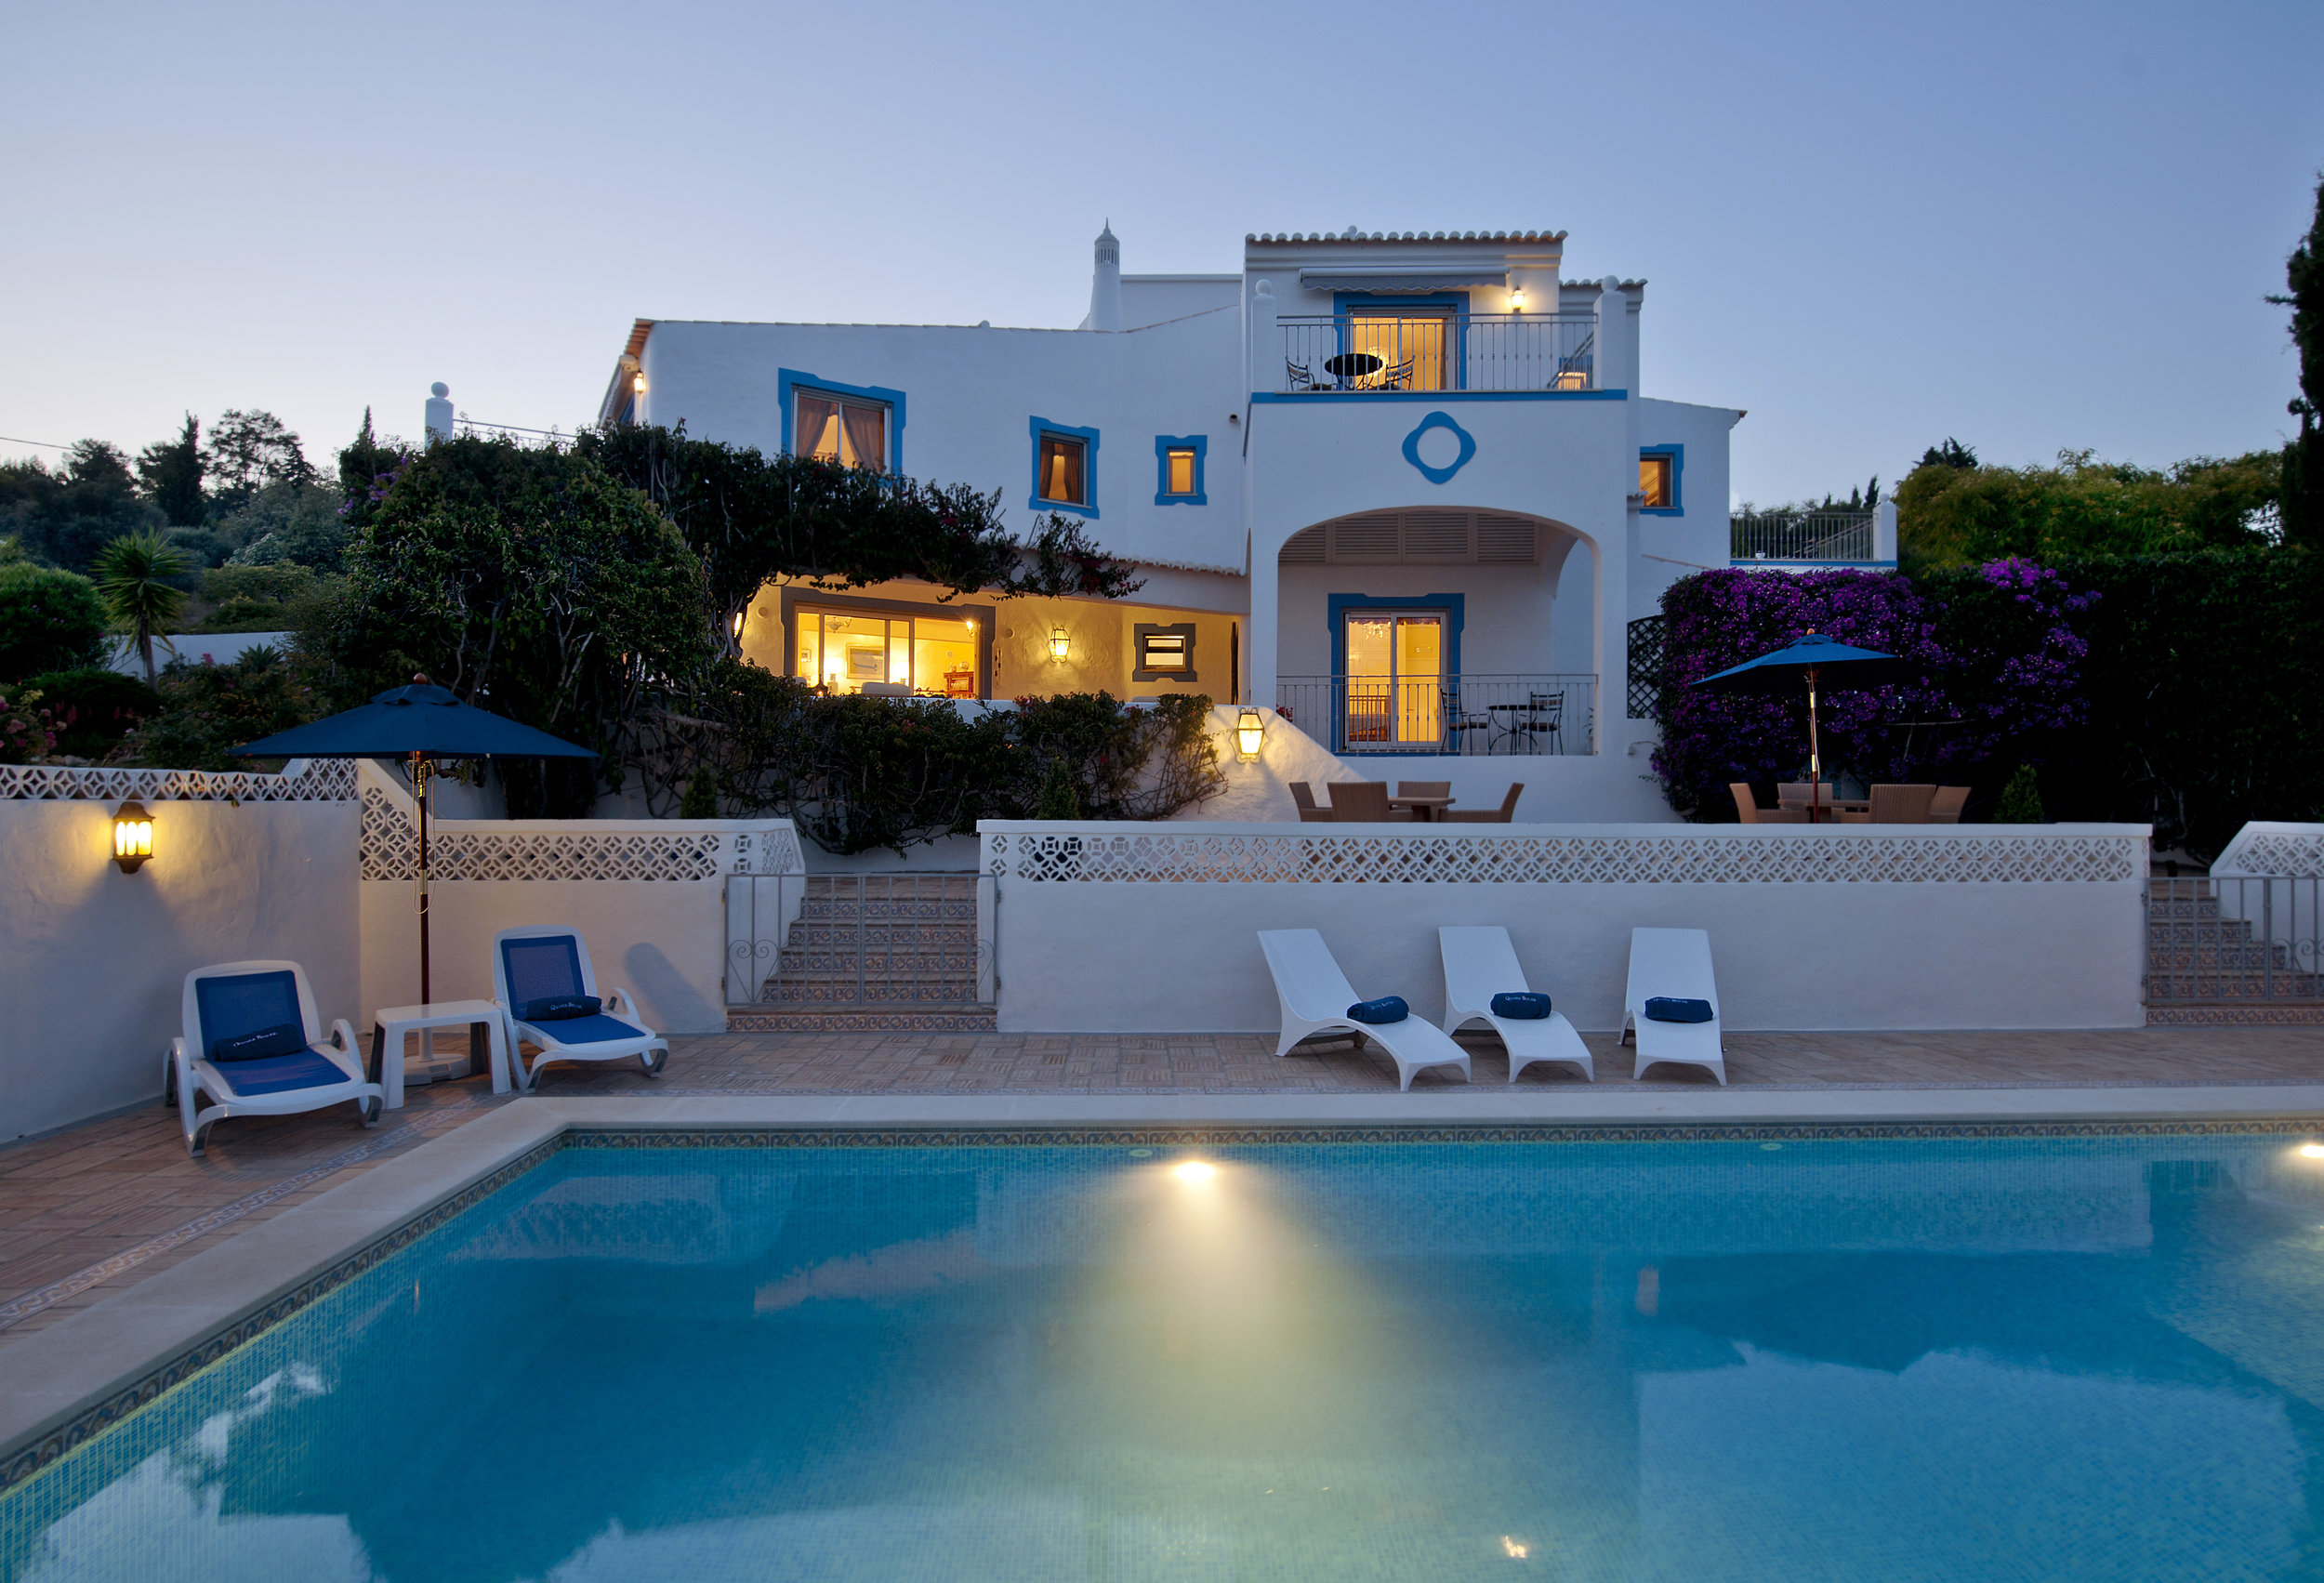 3 Back View from pool.jpg